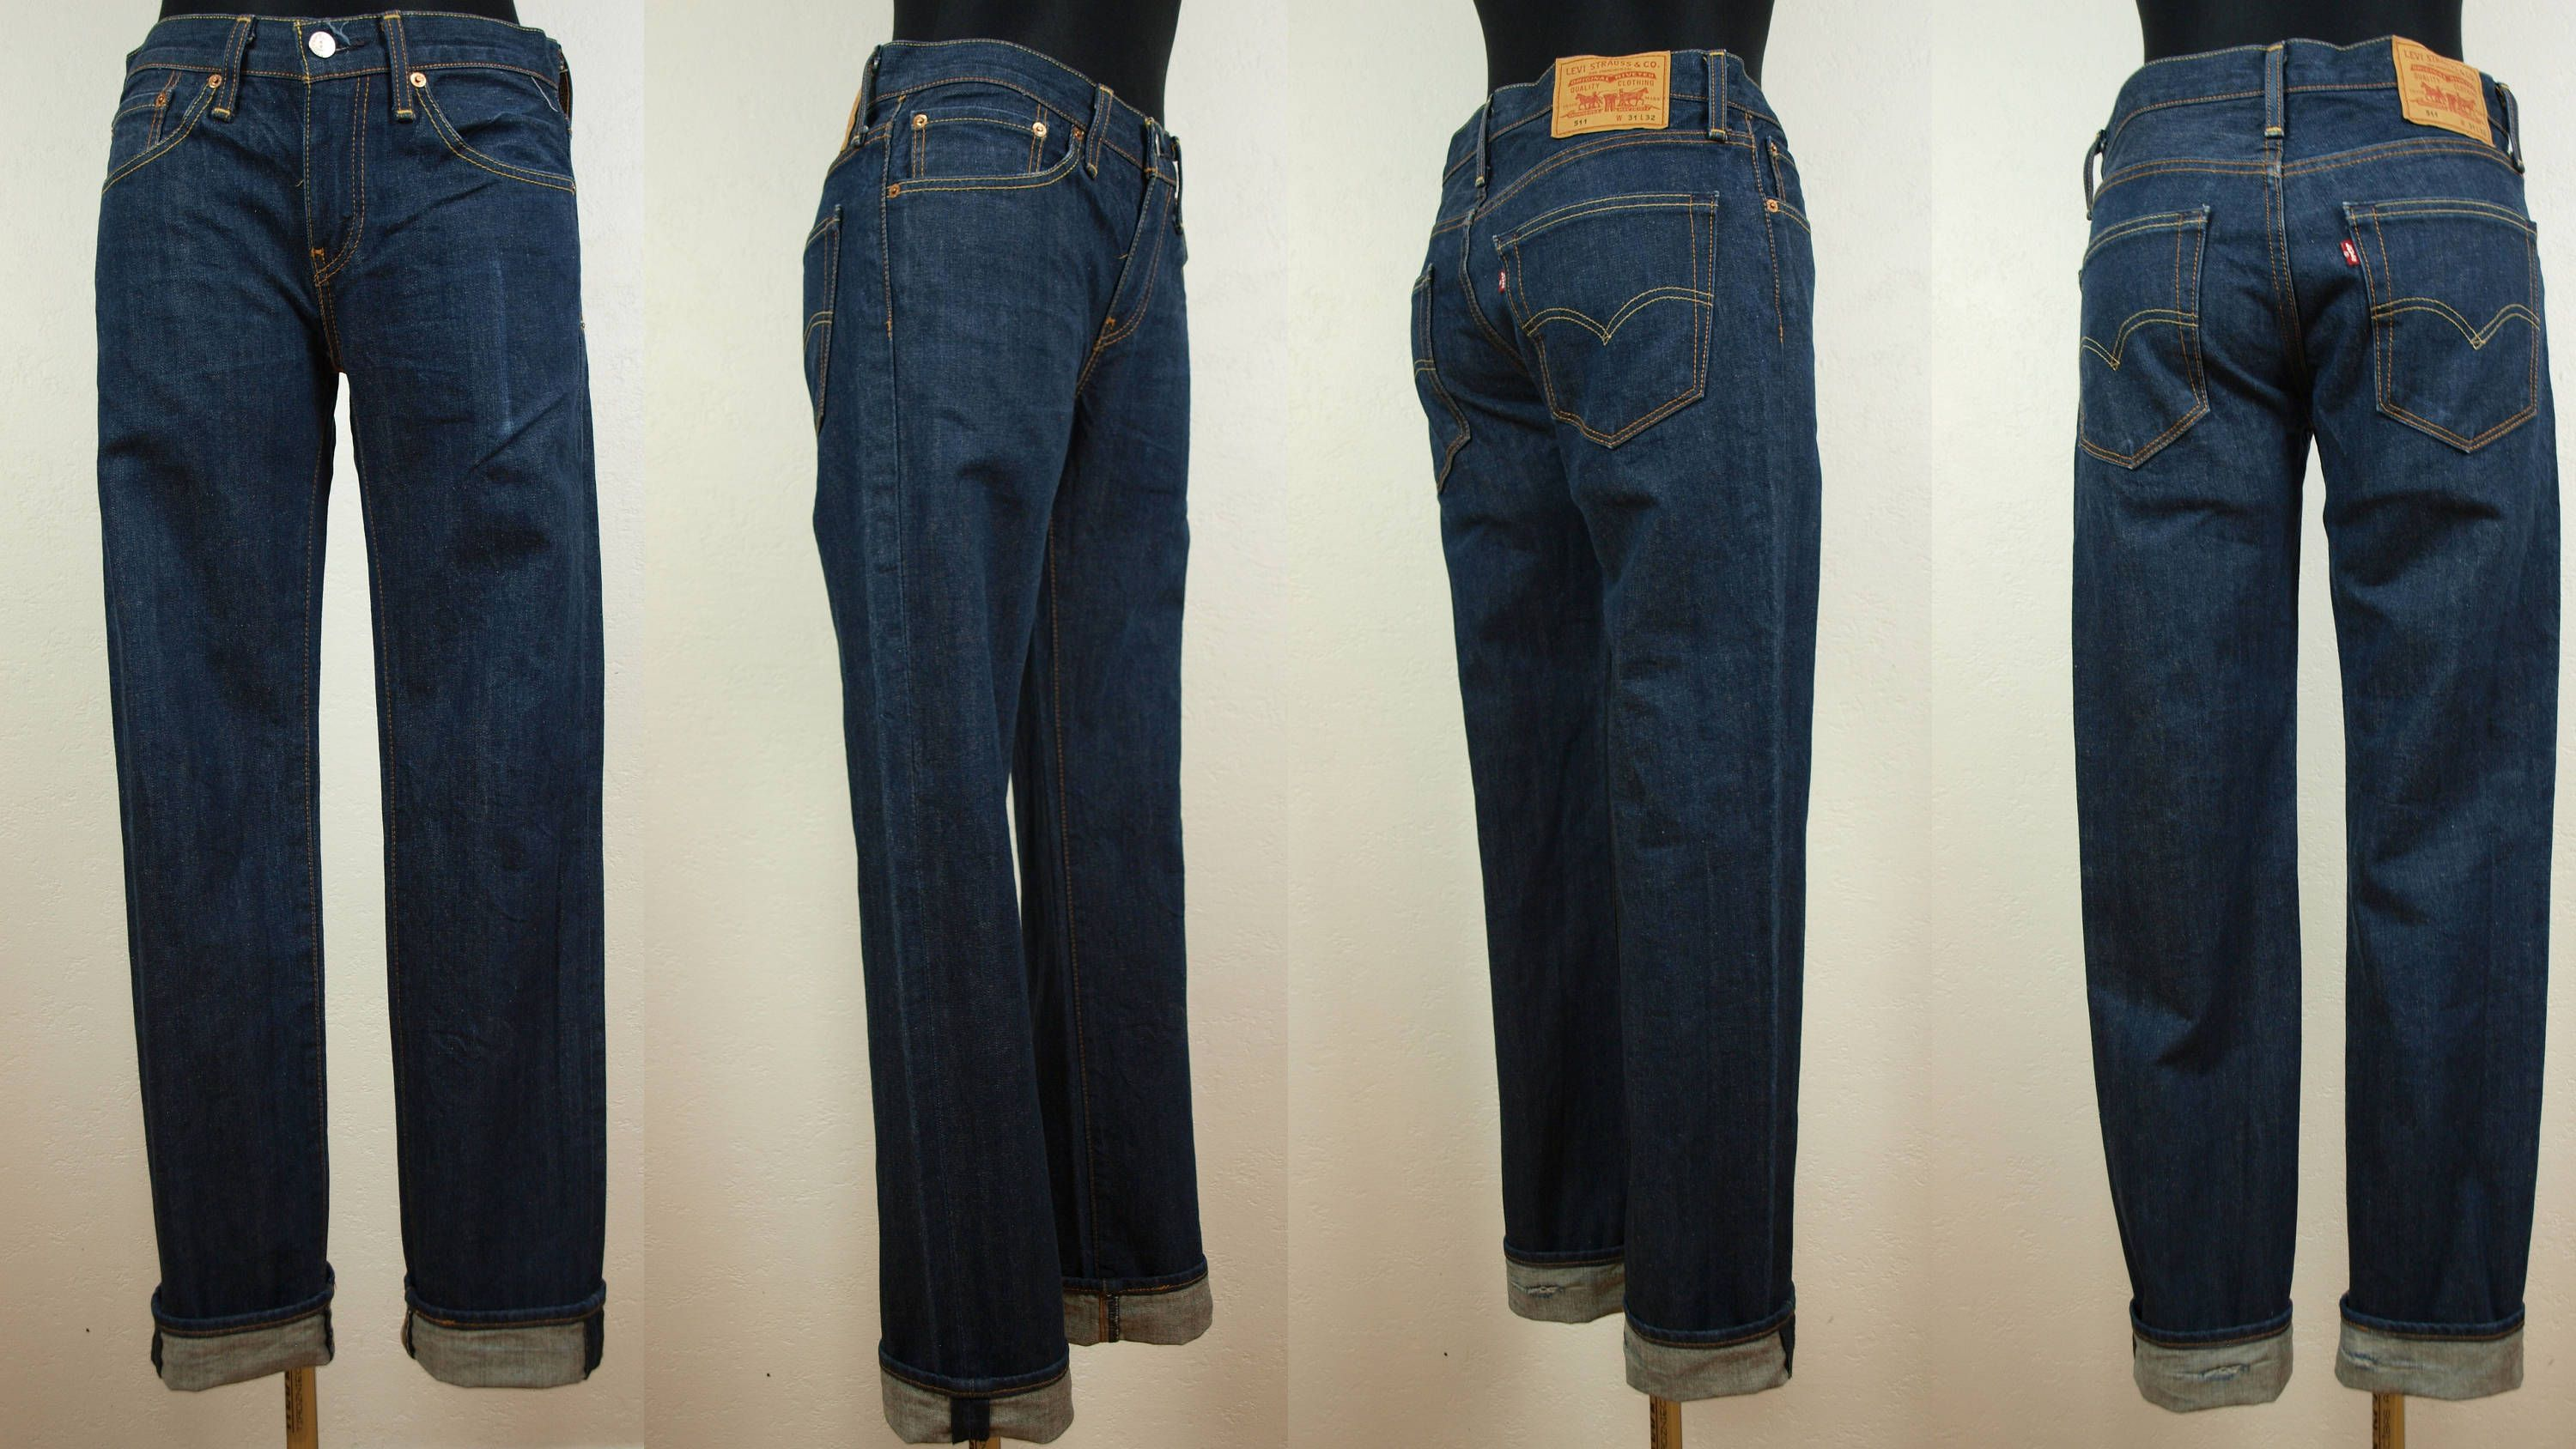 0ff62b76957 Levis 511, Dark blue Levis jeans, Size W31 L32 100% Cotton Made in Pakistan  classic waste Levis, straight leg Levis zipper fly by SillyPurpleZephyre on  Etsy